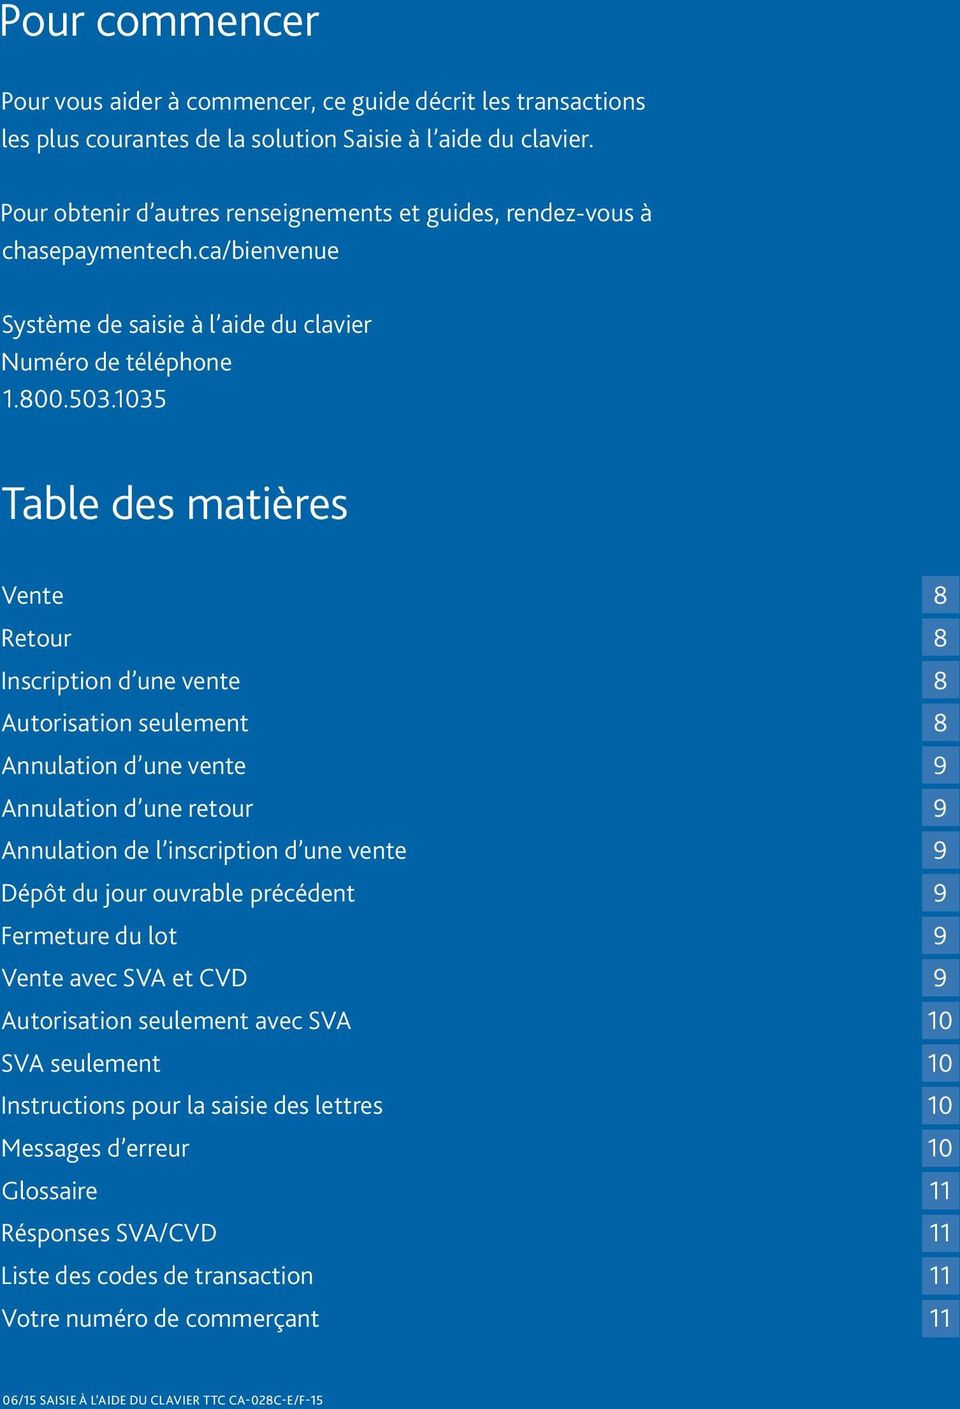 1035 Table des matières Vente 8 Retor 8 Inscription d ne vente 8 Atorisation selement 8 Annlation d ne vente 9 Annlation d ne retor 9 Annlation de l inscription d ne vente 9 Dépôt d jor ovrable